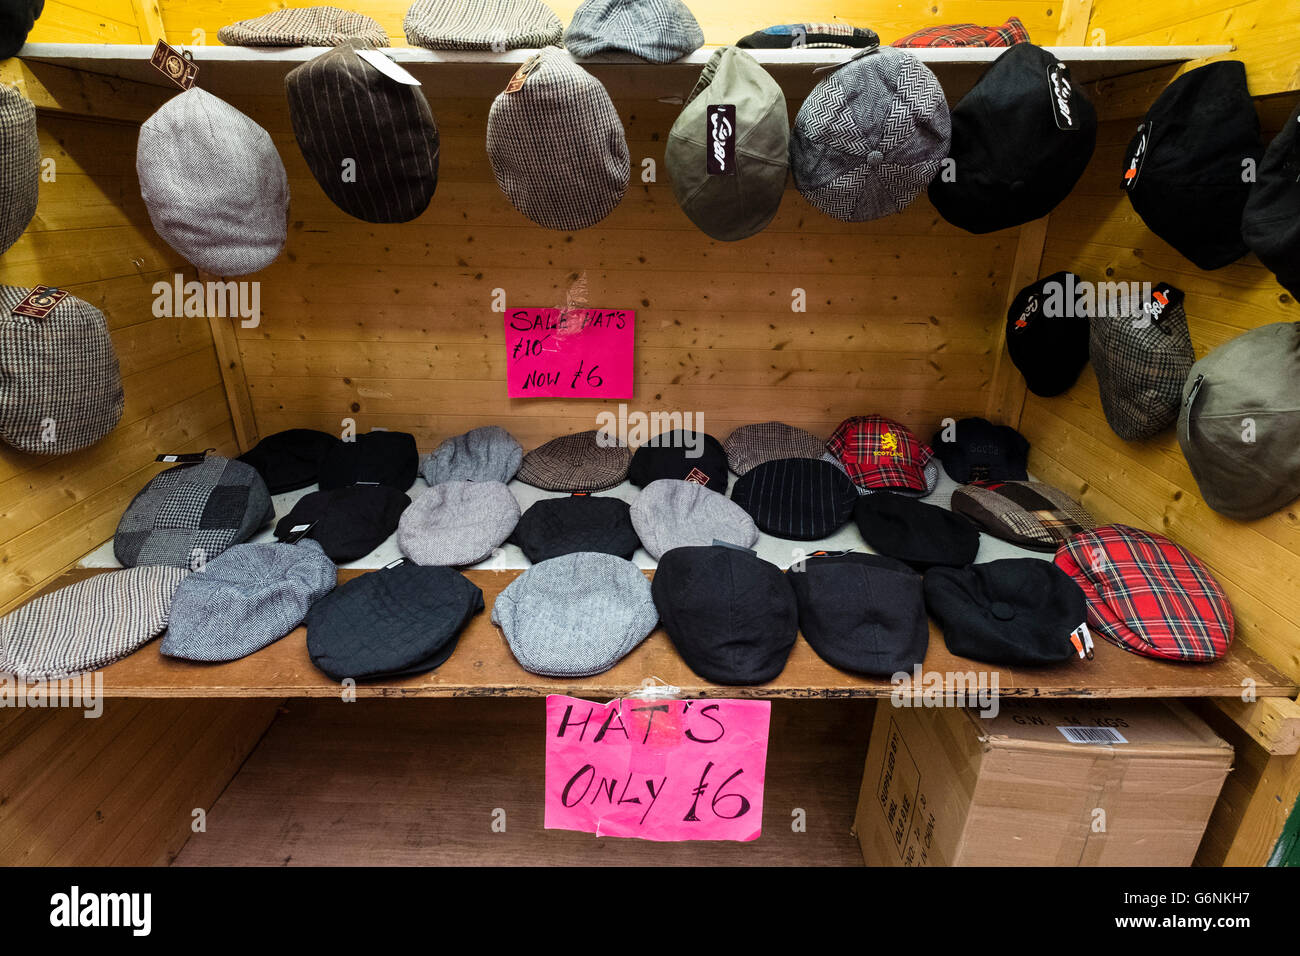 Traditional cloth caps for sale on stall at Barras Market in Gallowgate Glasgow, United Kingdom - Stock Image